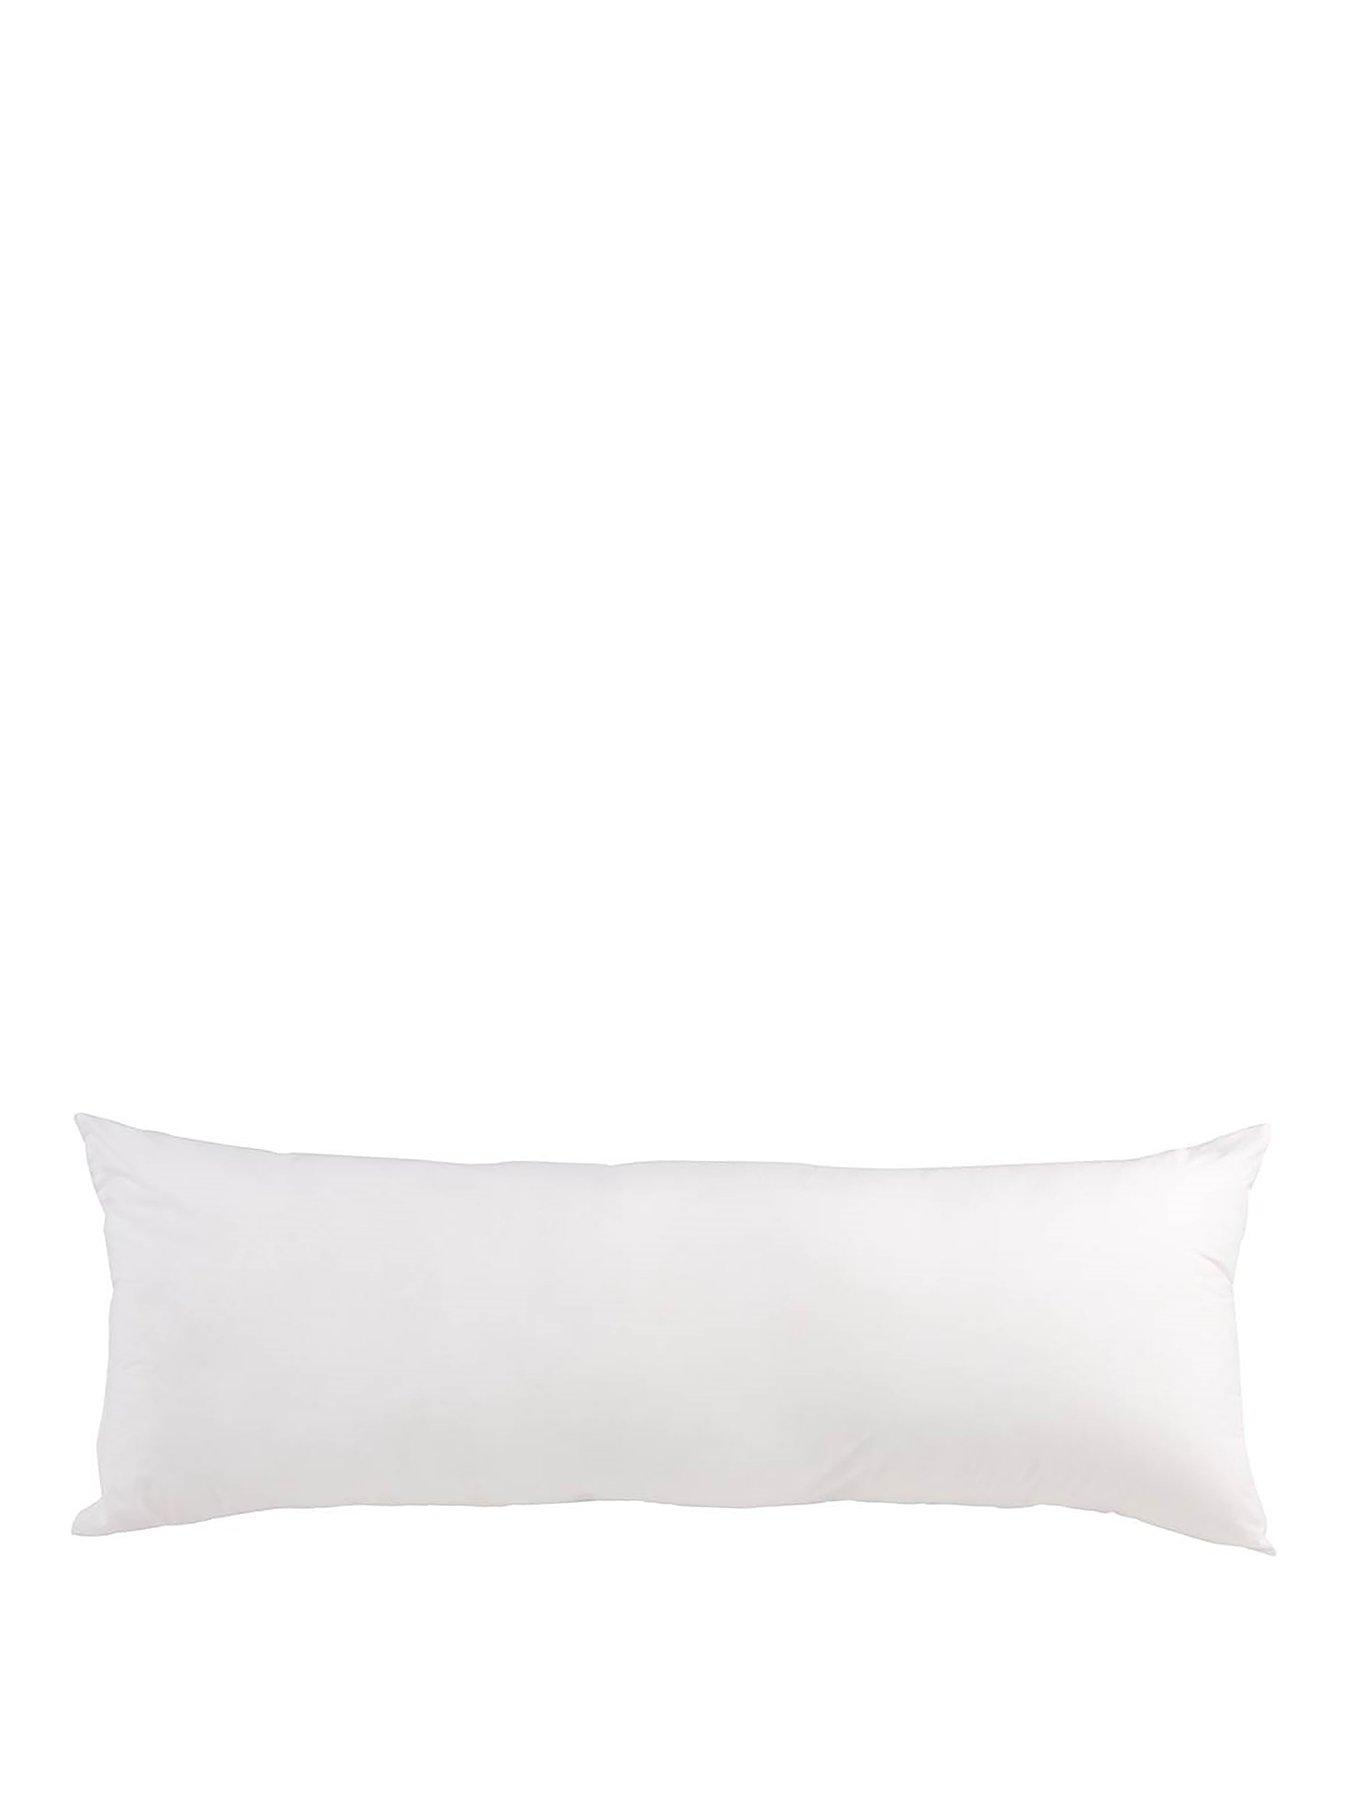 double bed bolster pillow